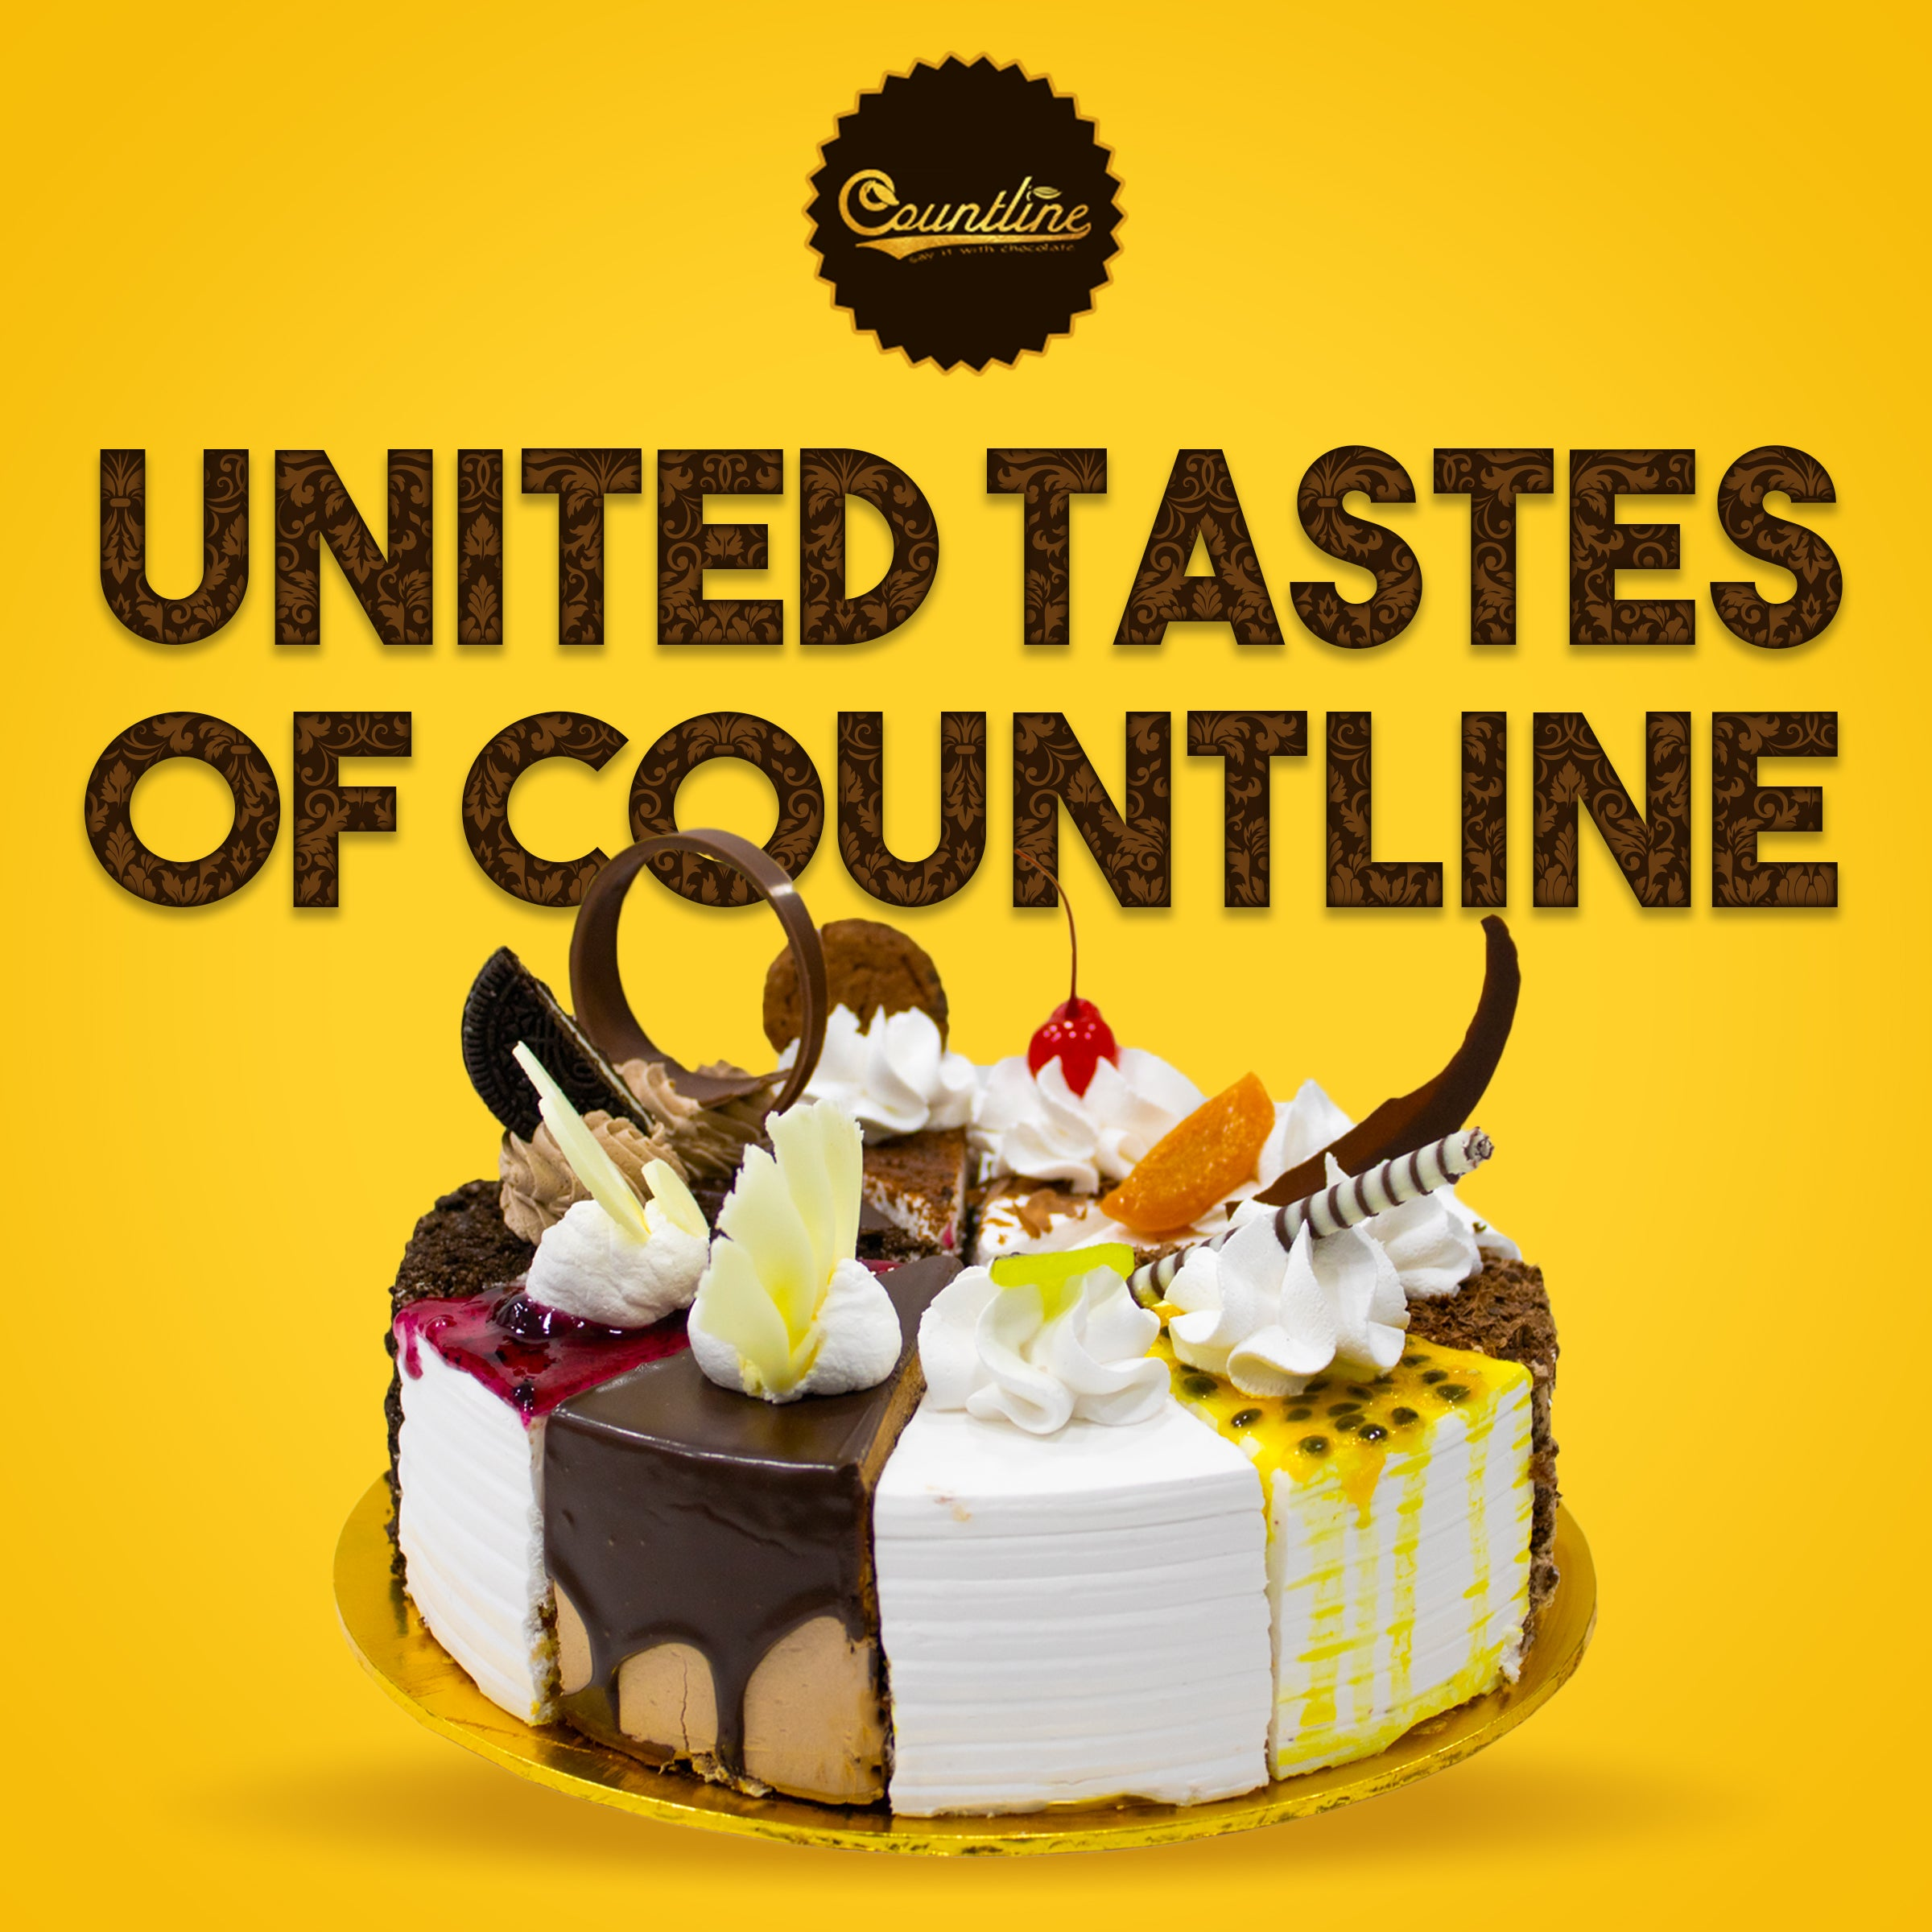 United Tastes of Countline